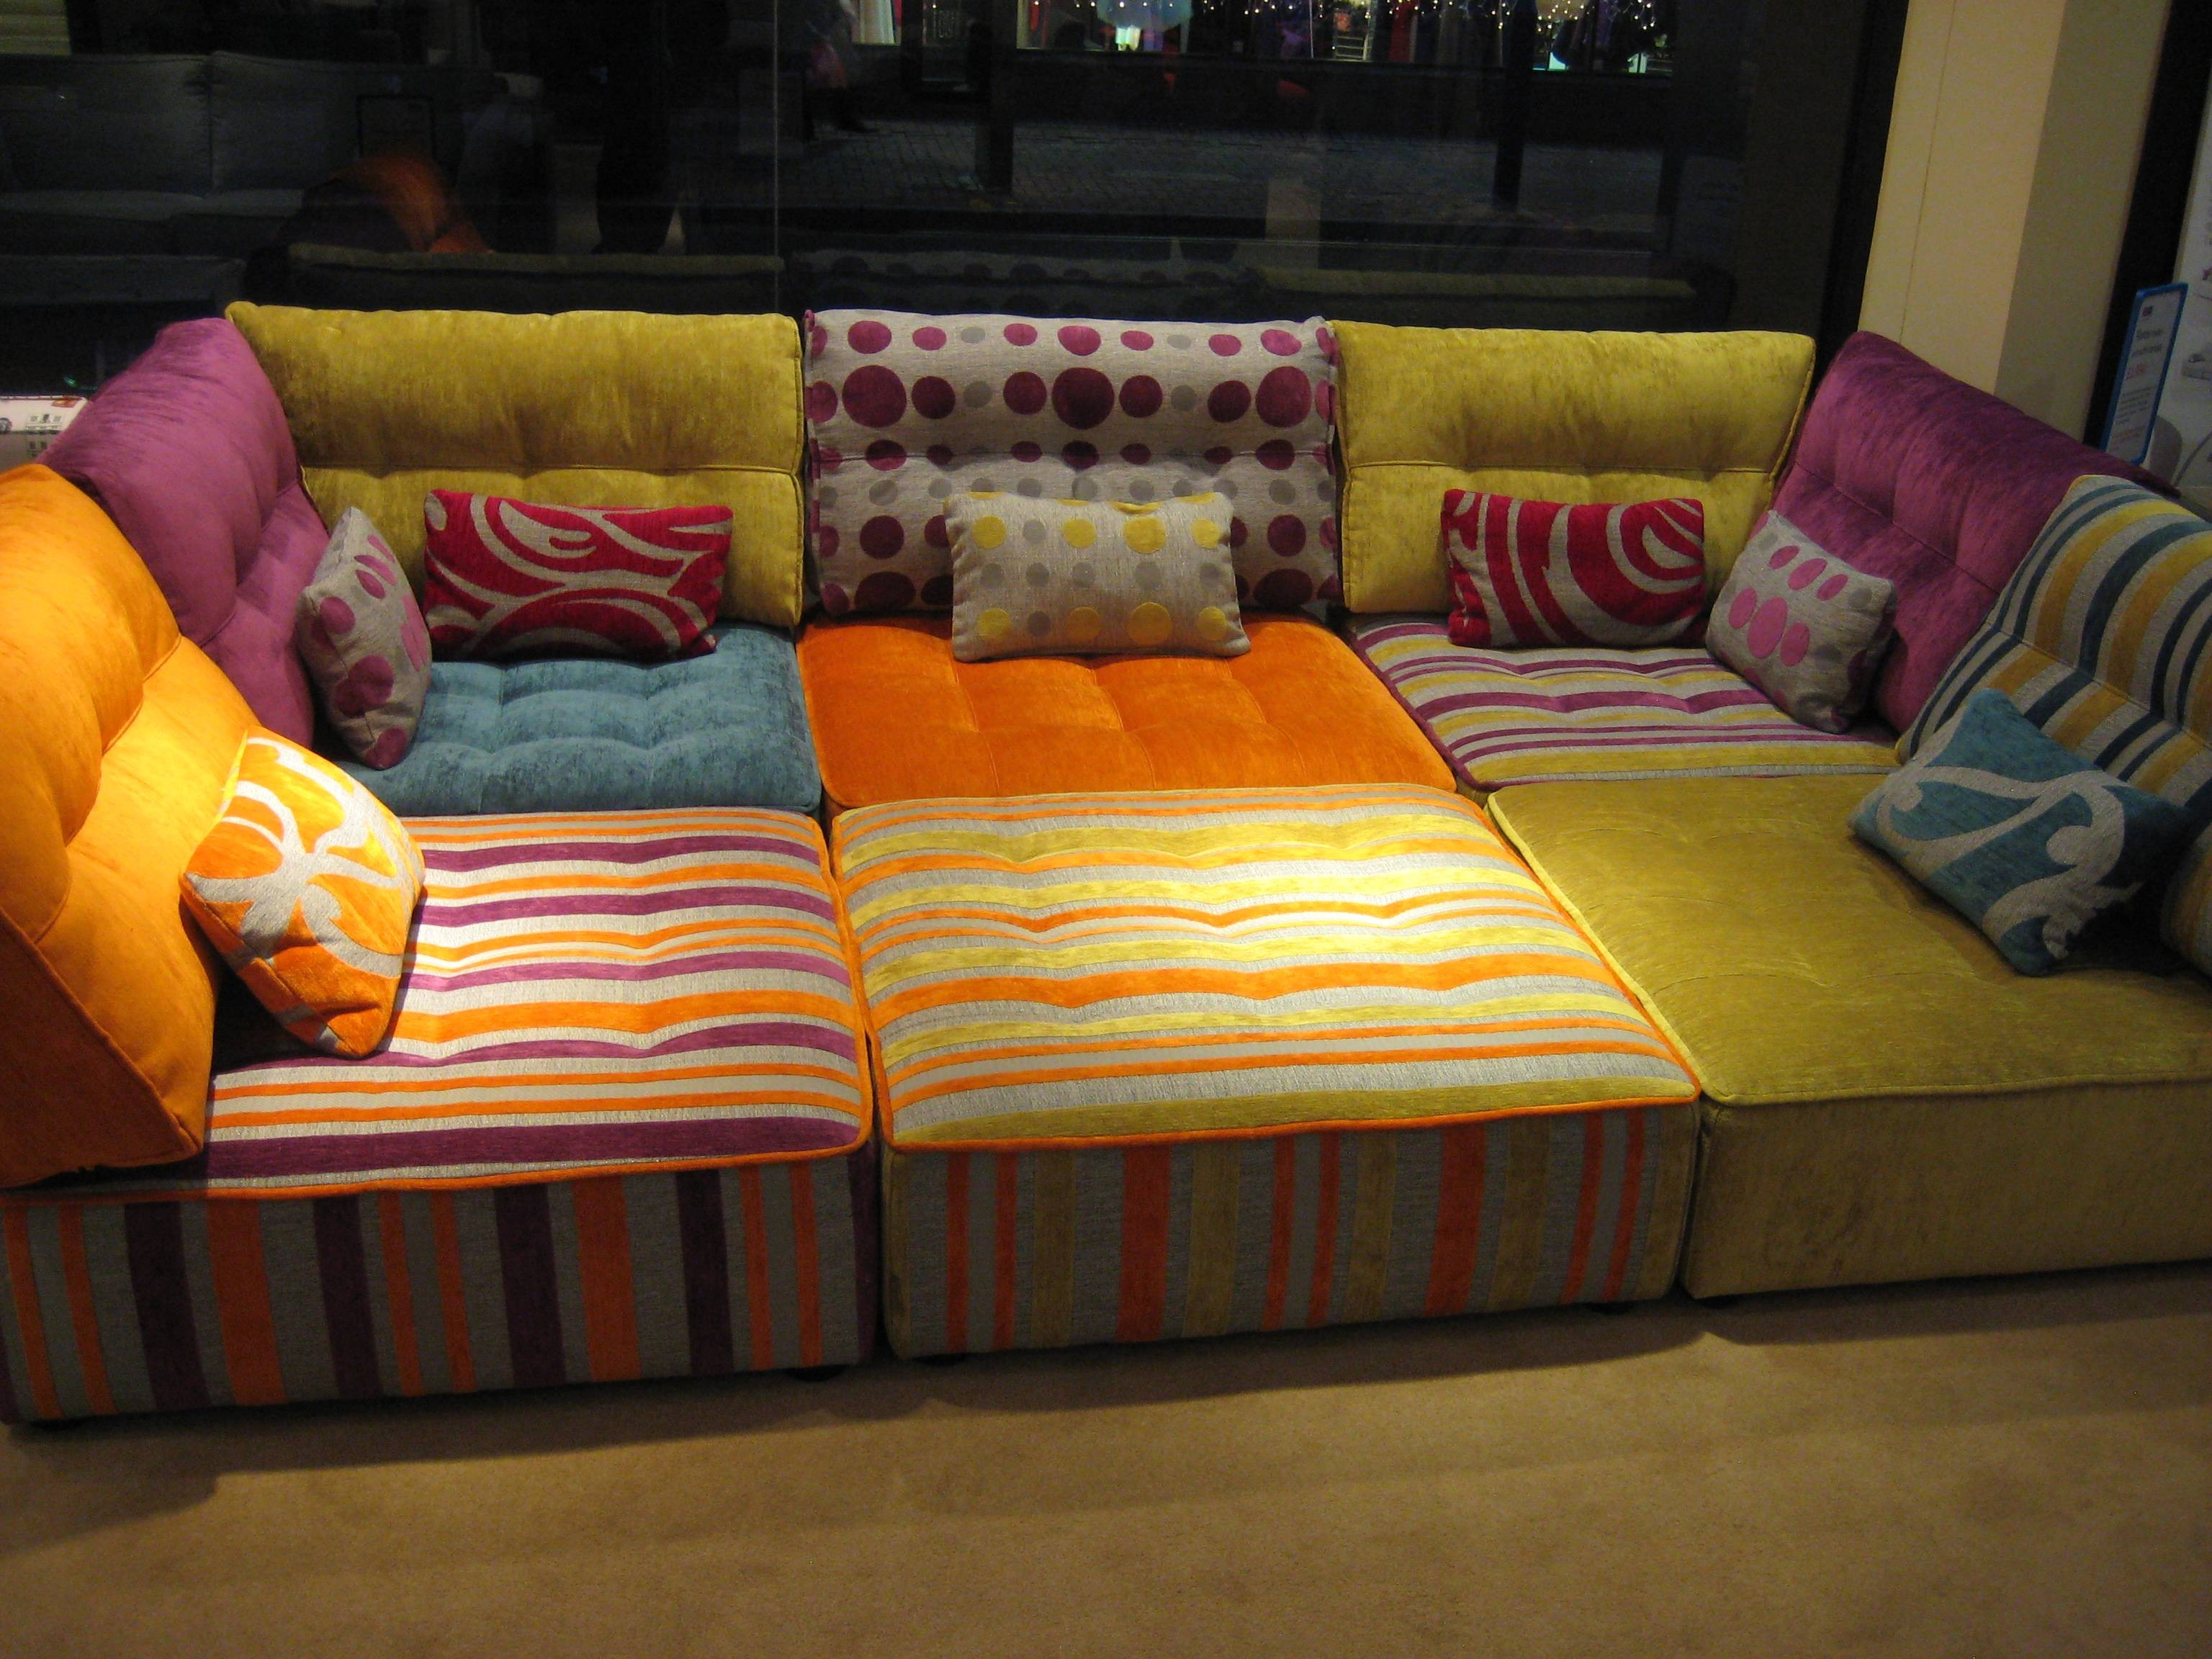 Elegant Sofa Pit 72 In Sofas And Couches Set With Sofa Pit in Pit Sofas (Image 3 of 30)